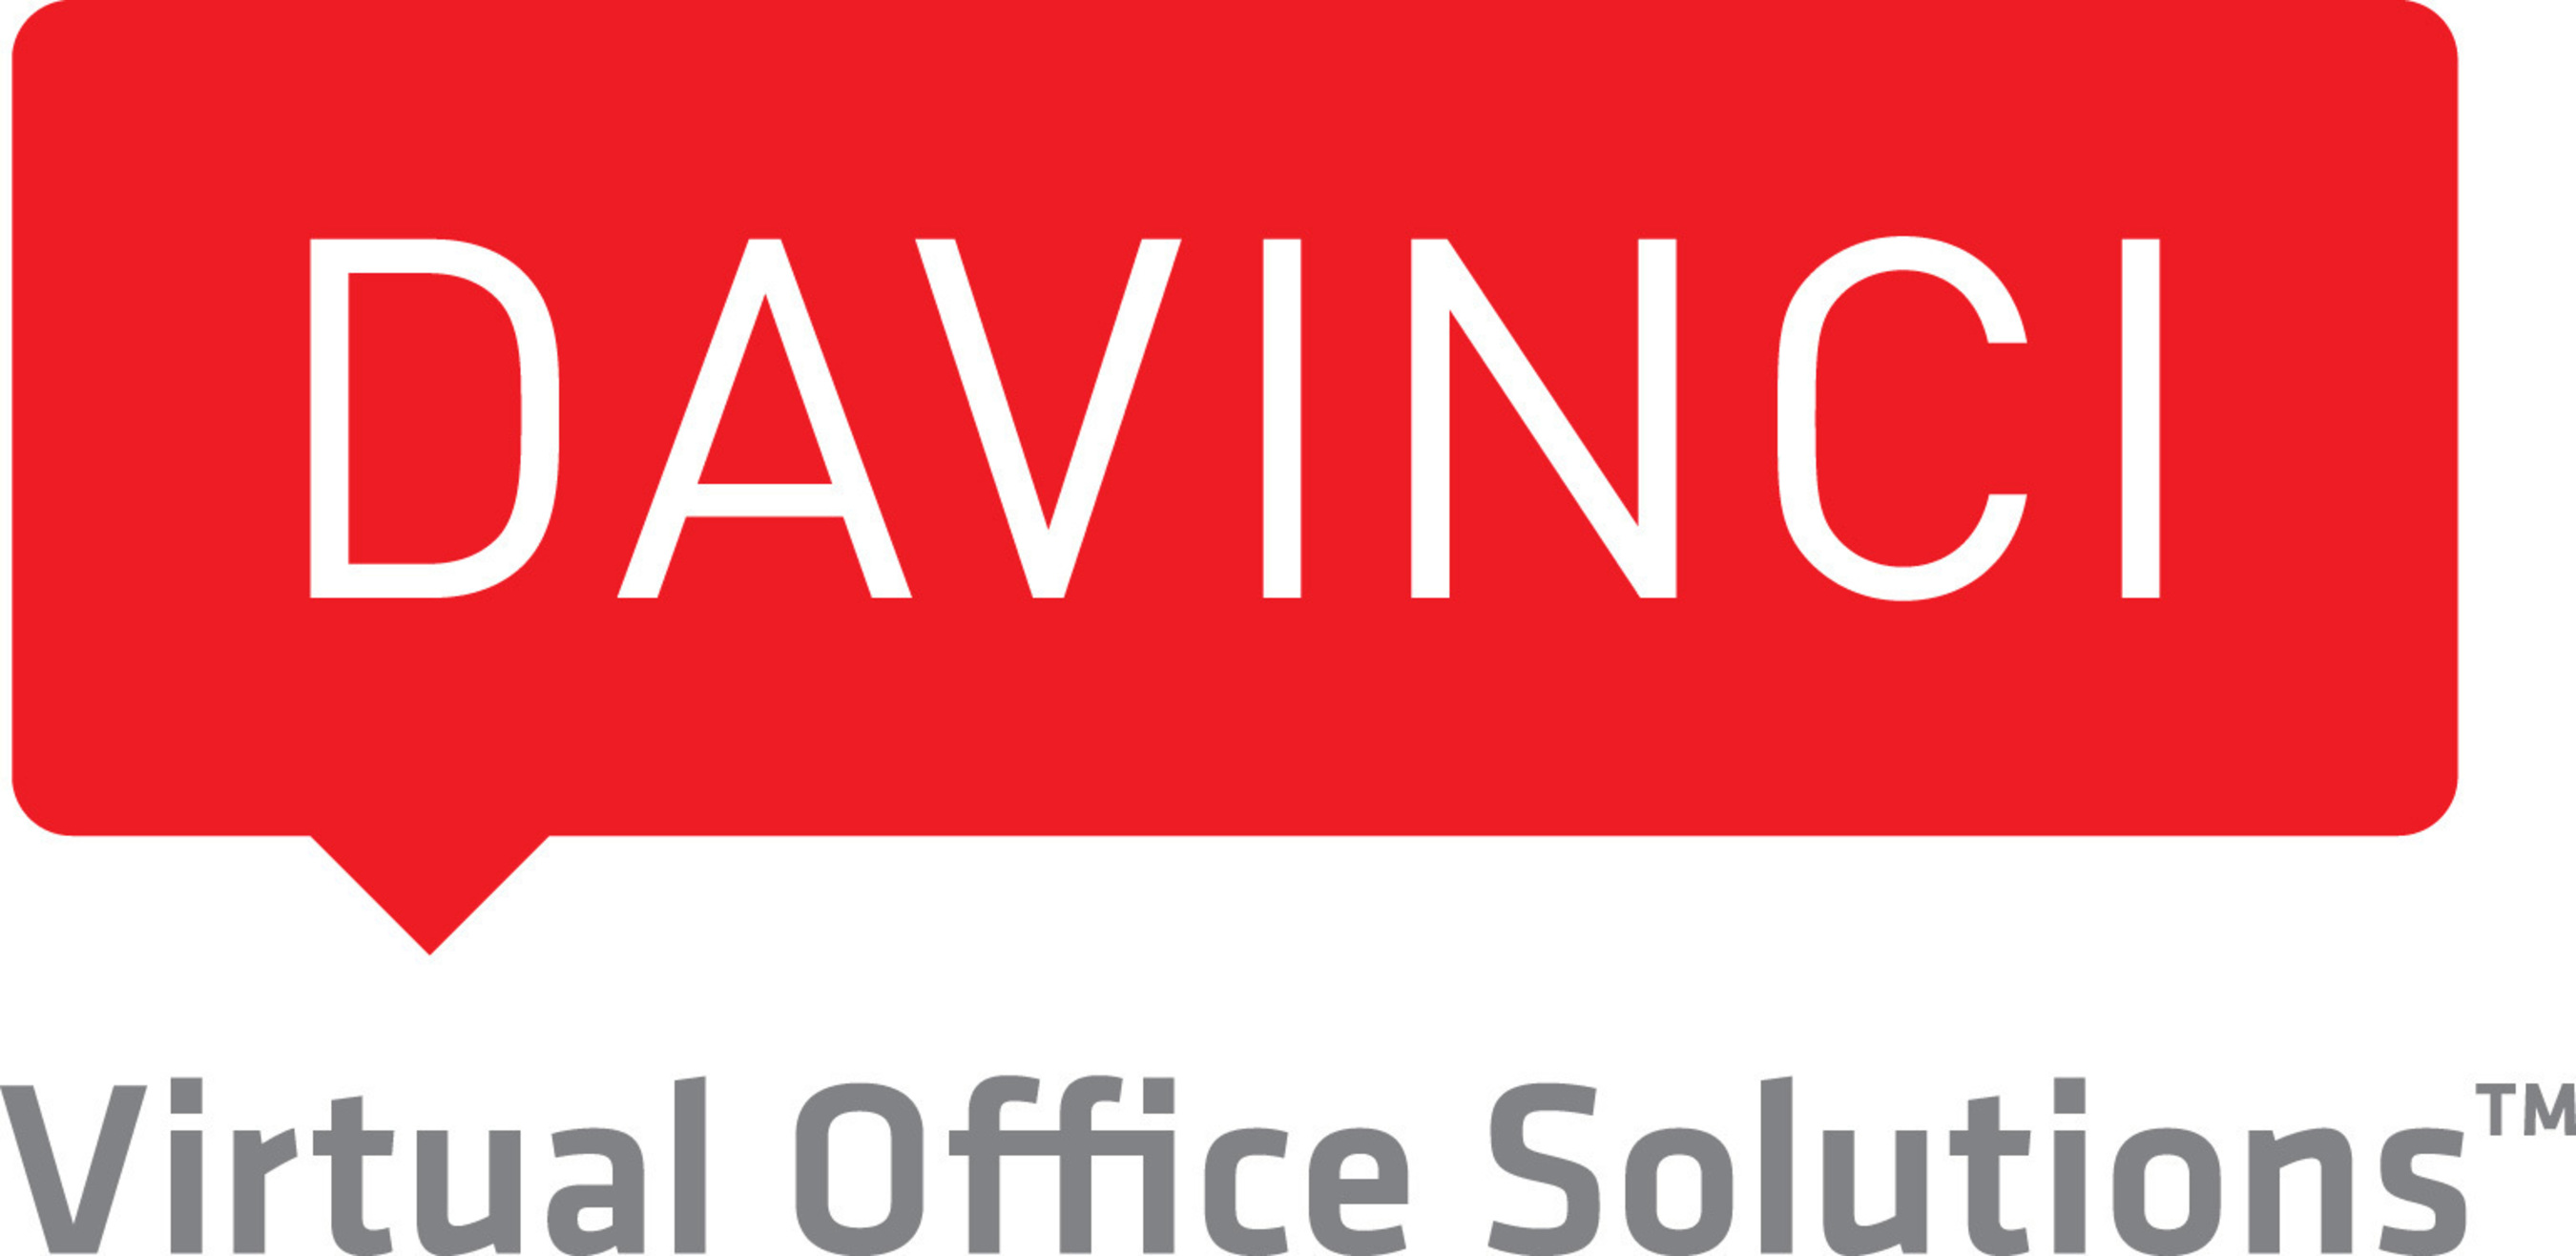 DavinciMeetingRooms com Launches New Video Conferencing Services